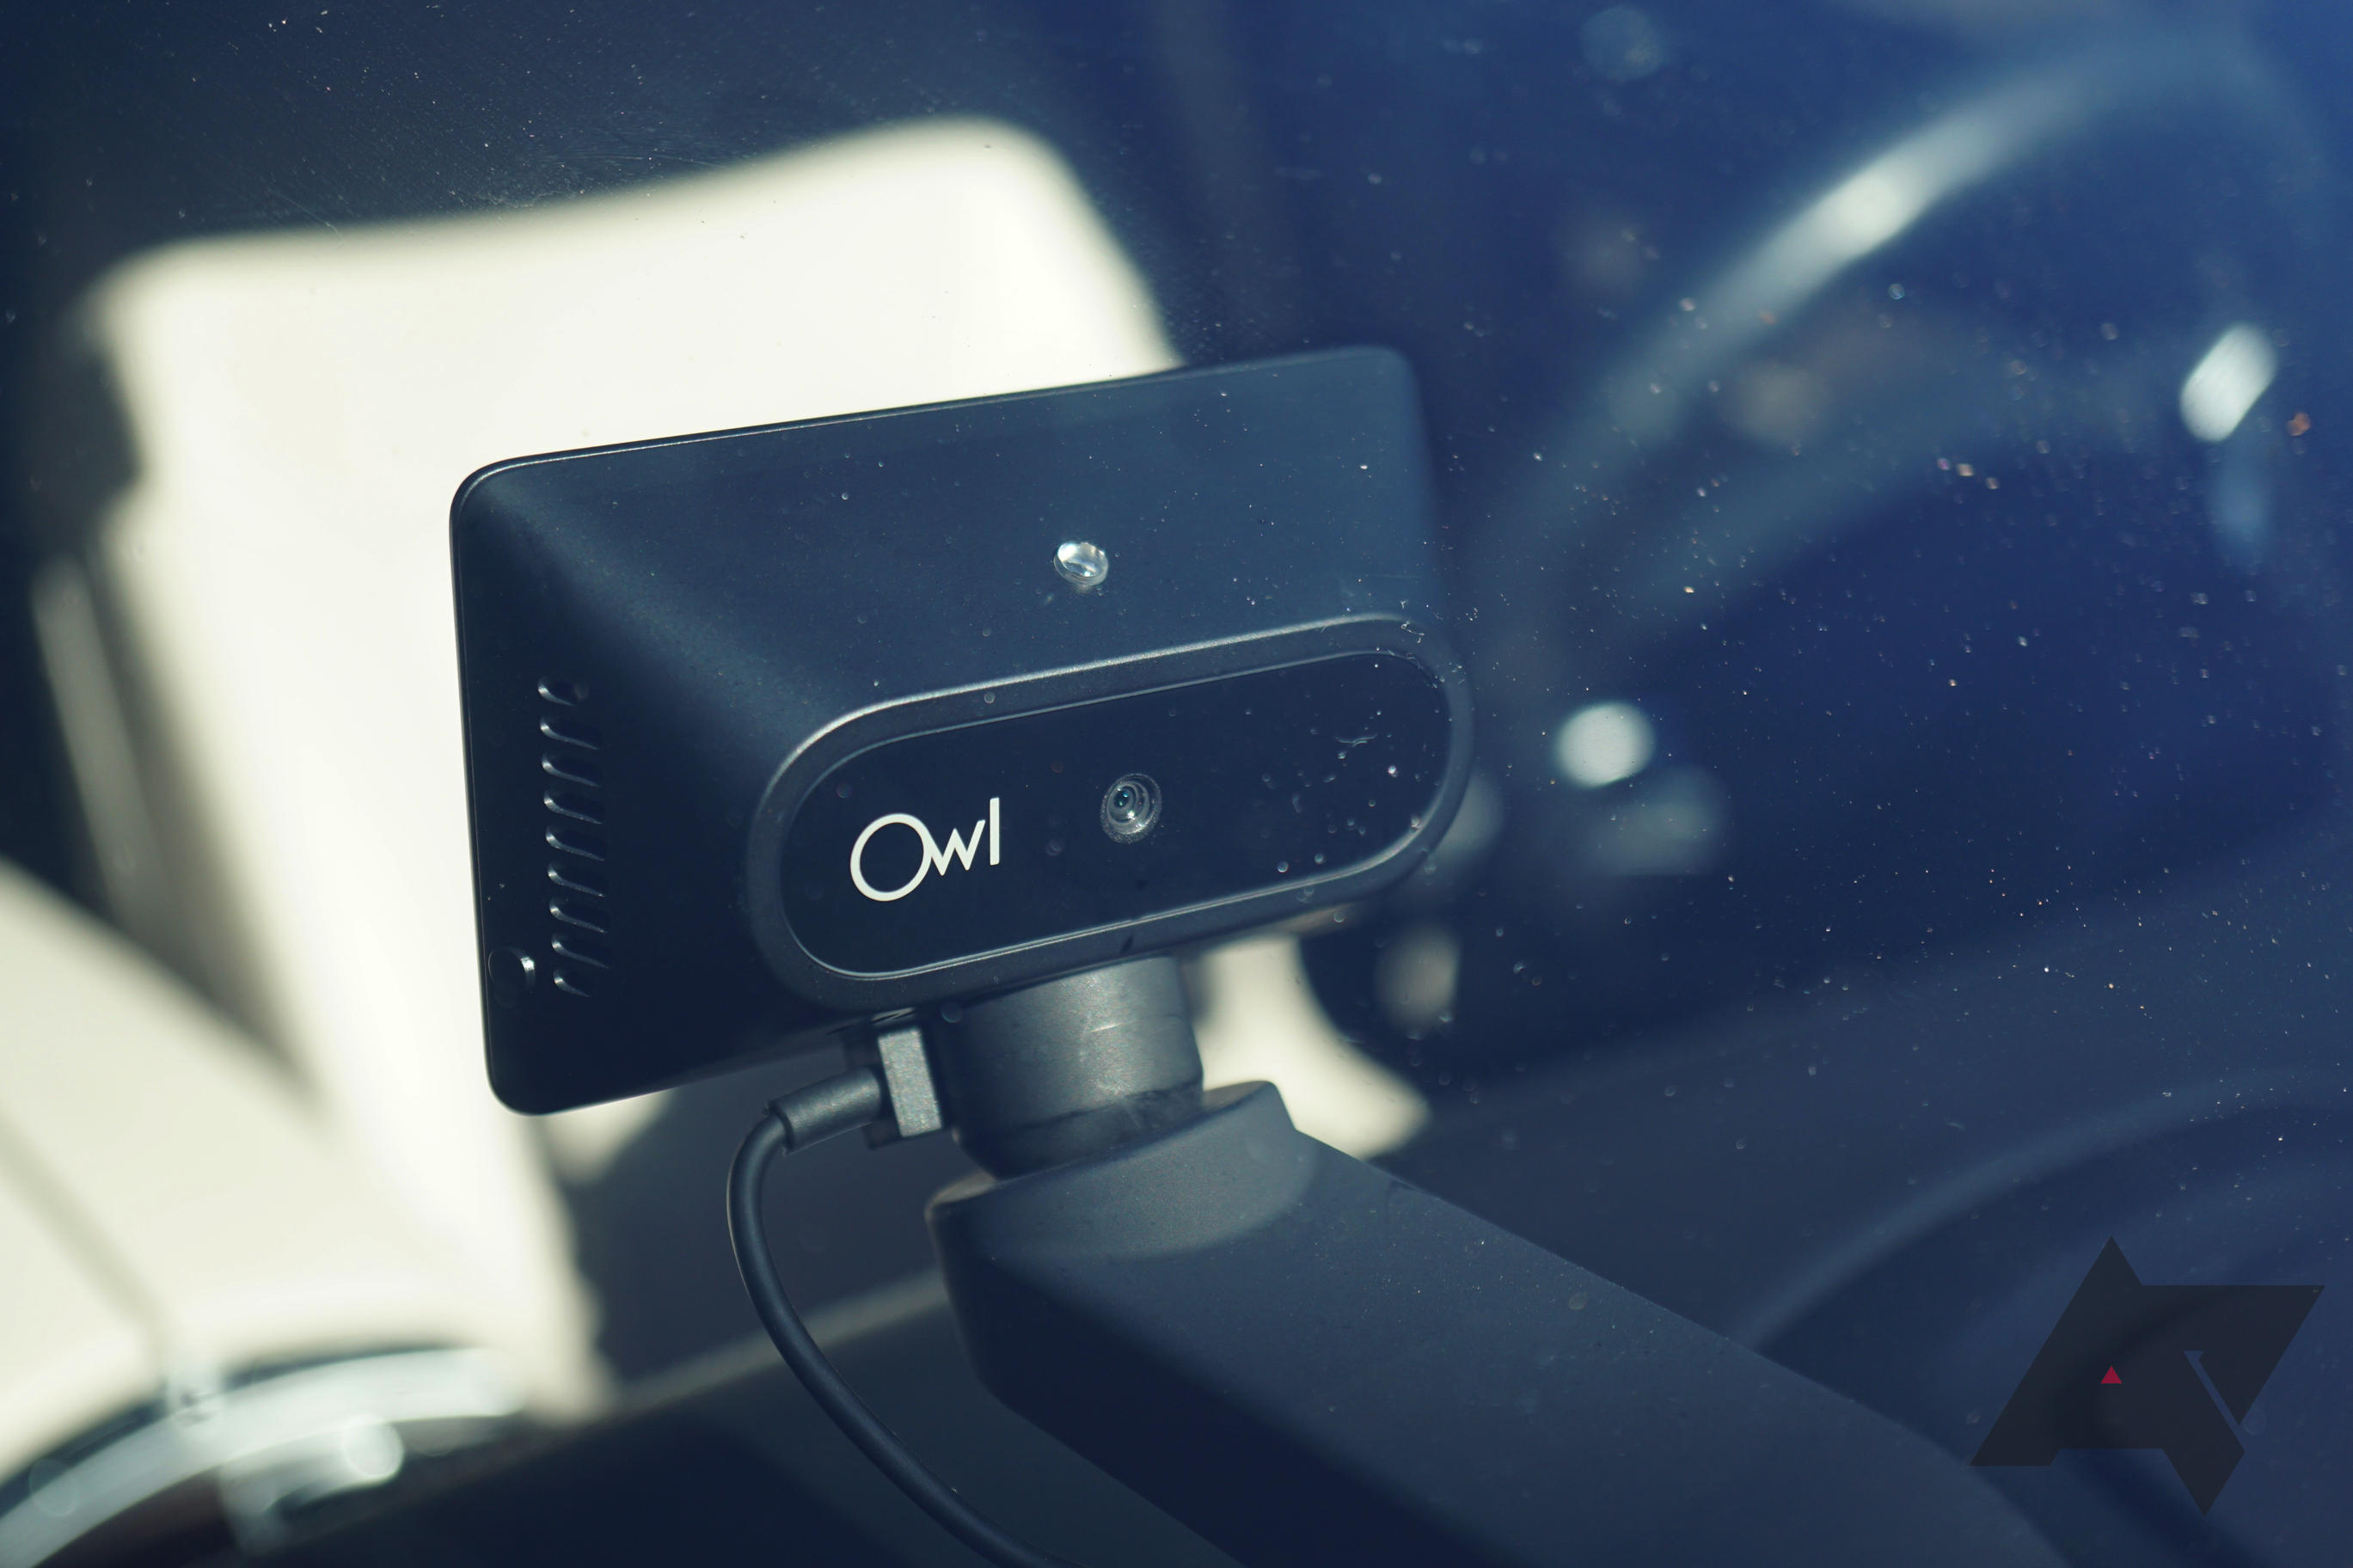 Owl Car Cam review: An expensive LTE-powered dashcam with